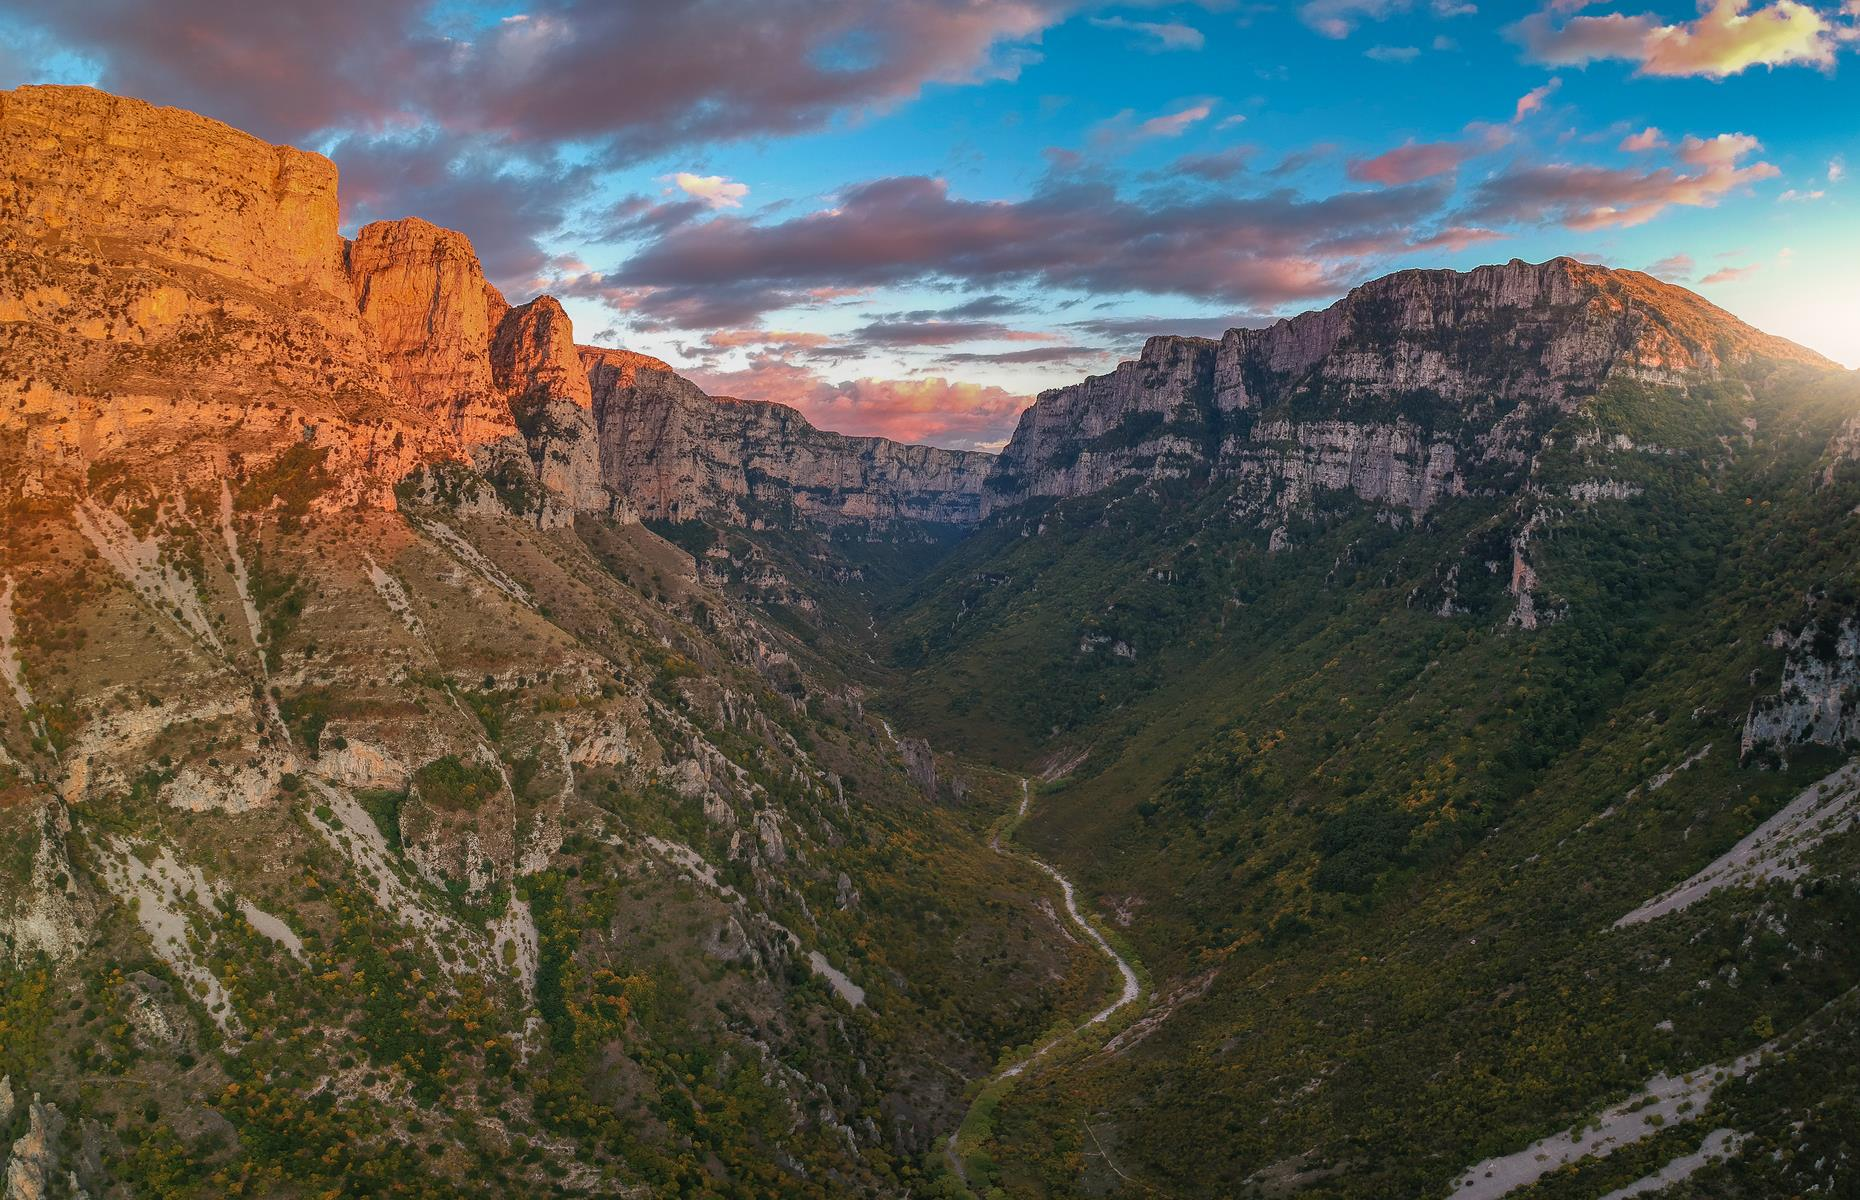 Slide 22 of 31: Established 1973, Vikos National Park is flecked with deciduous and coniferous forests, and covers 49 square miles (127sq km) of northeast Greece, near the Albanian border. It's remote, with Thessaloniki reachable in three hours. However, it's worth the trip with Vikos celebrated for its breathtaking Vikos Gorge, plus interesting rock formations like the Stone Forest.